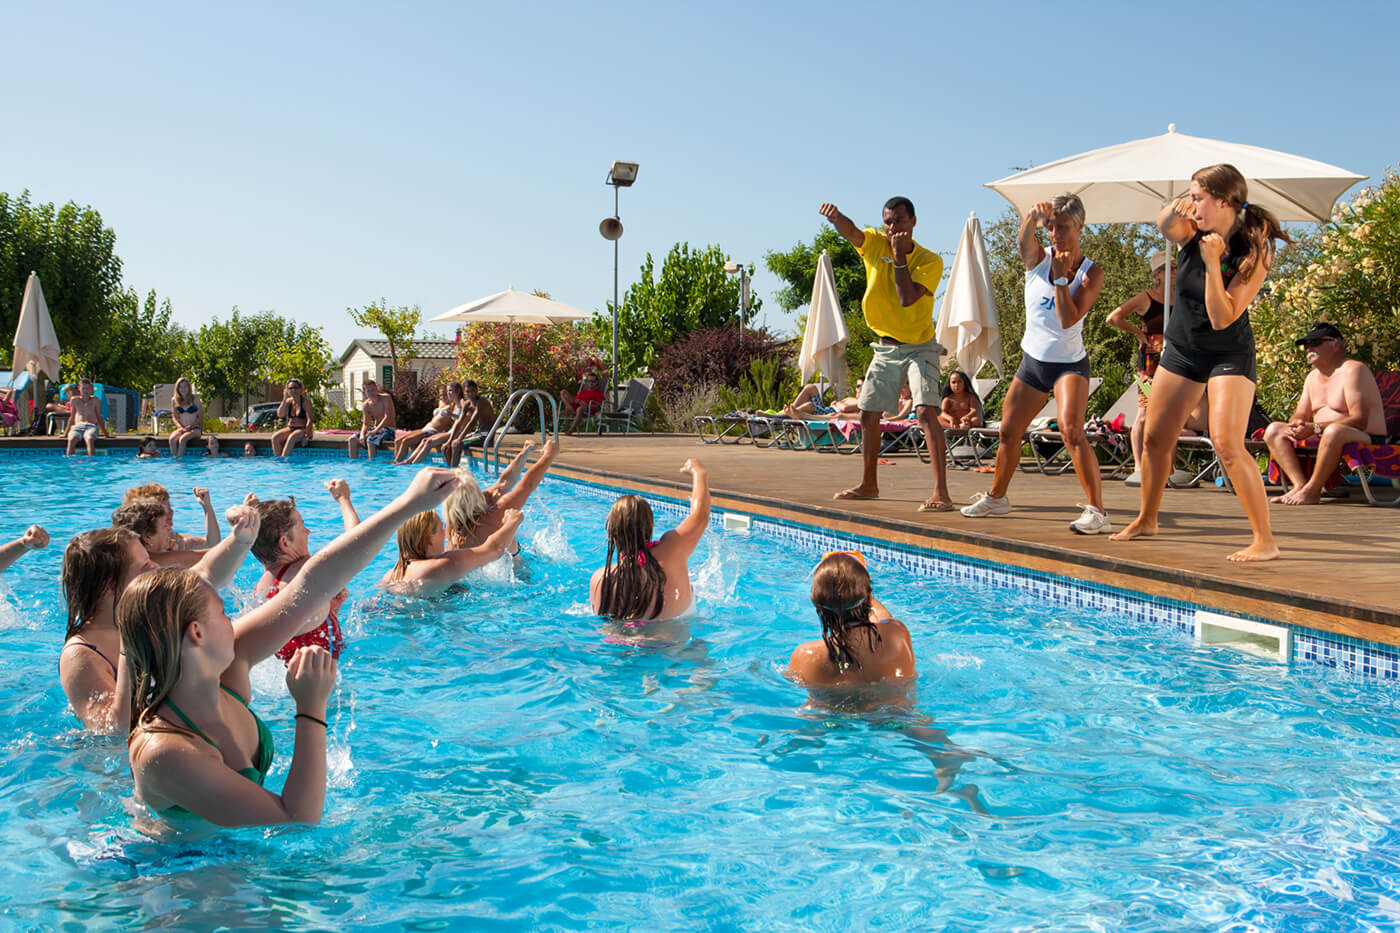 Campsite with swimming pool. Water sports and activities. Aquagym